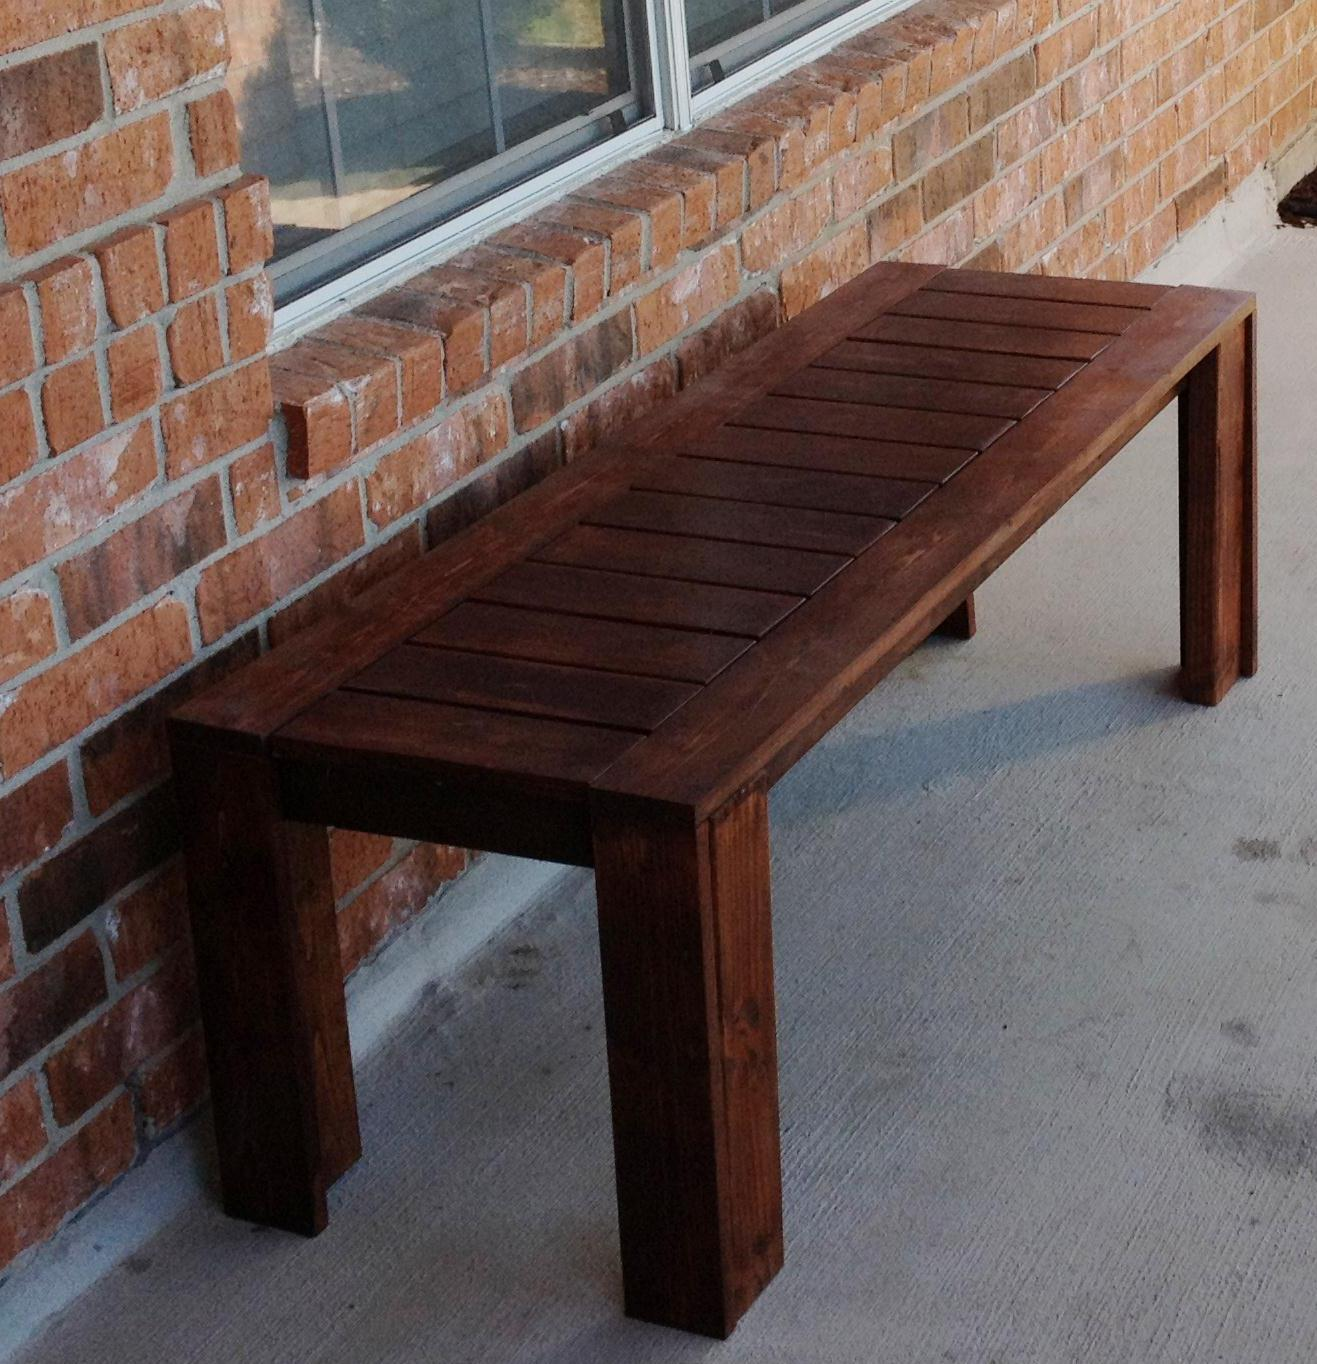 Simple Outdoor Bench - DIY Projects